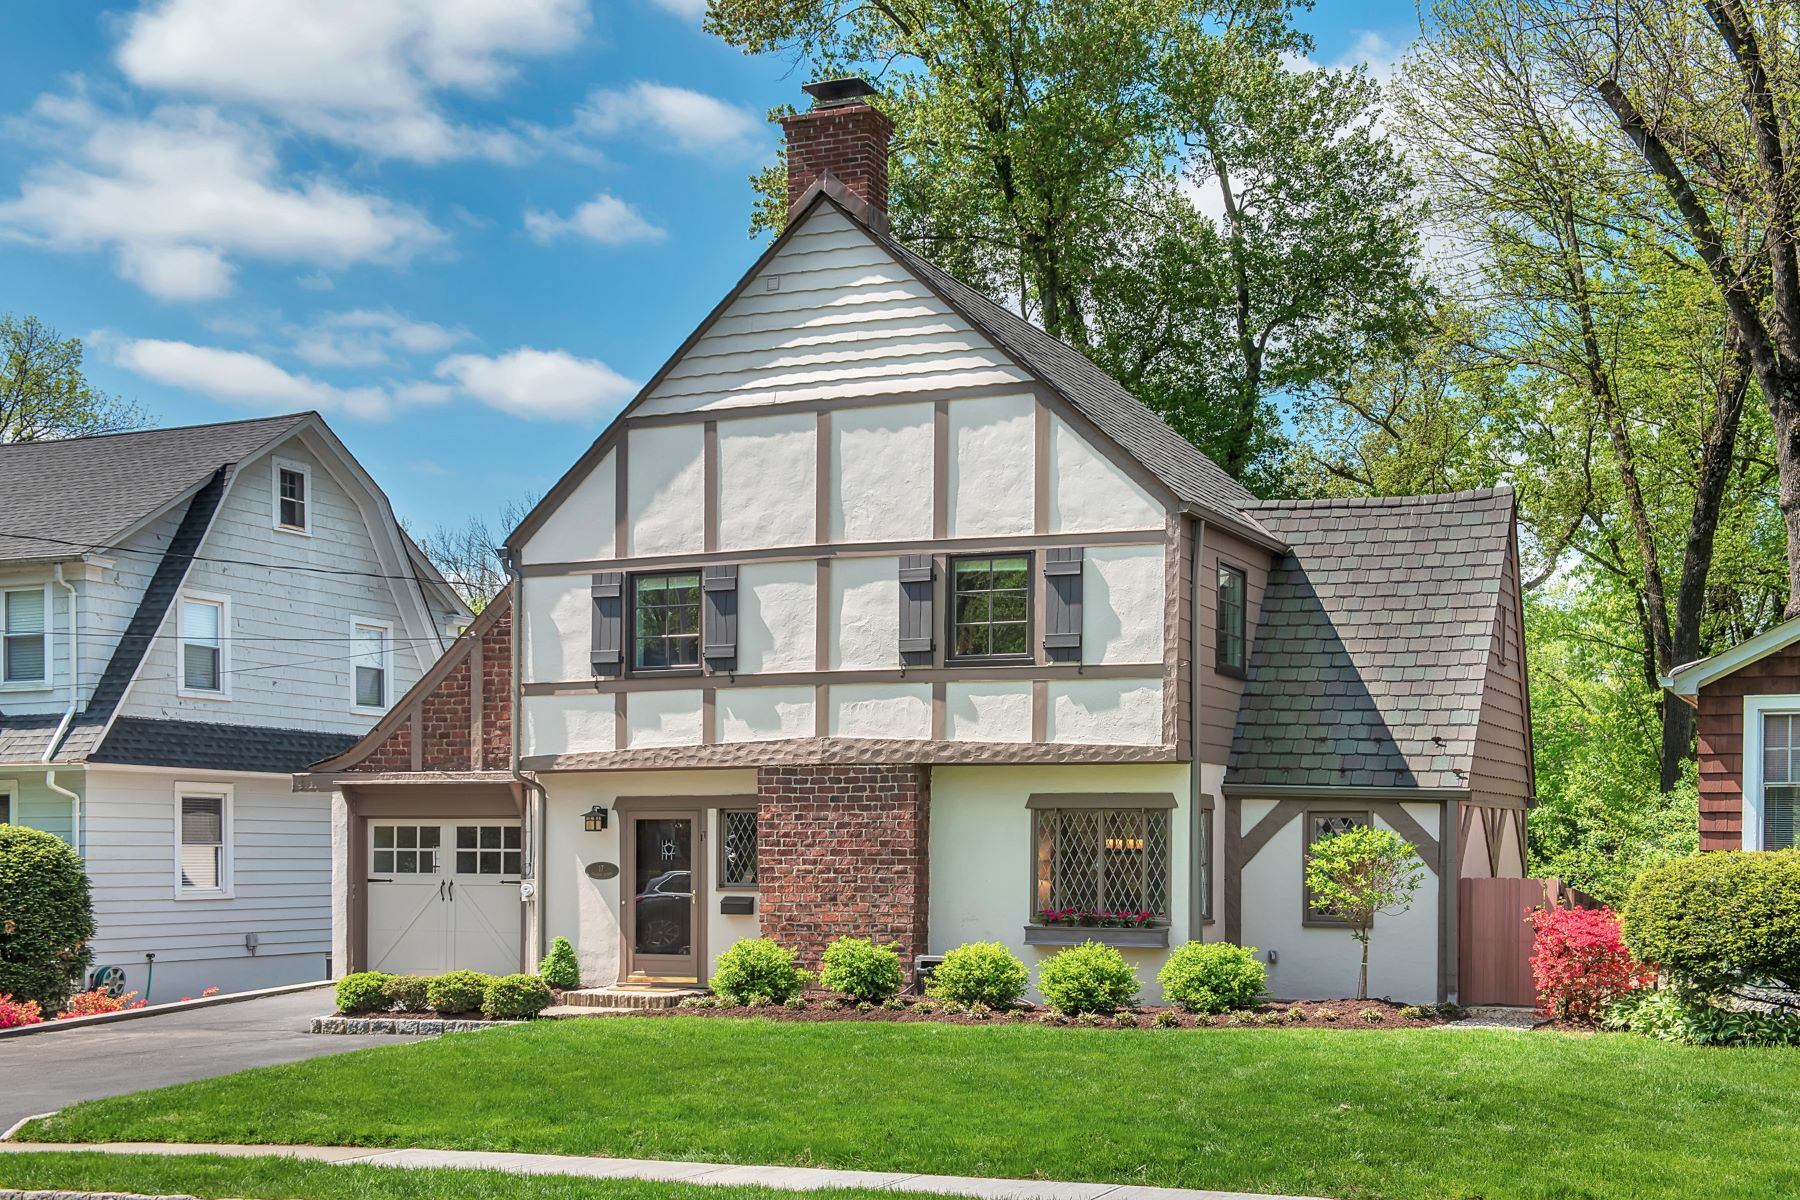 Single Family Homes for Sale at Charming Four Bedroom Tudor 17 Division Avenue New Providence, New Jersey 07974 United States